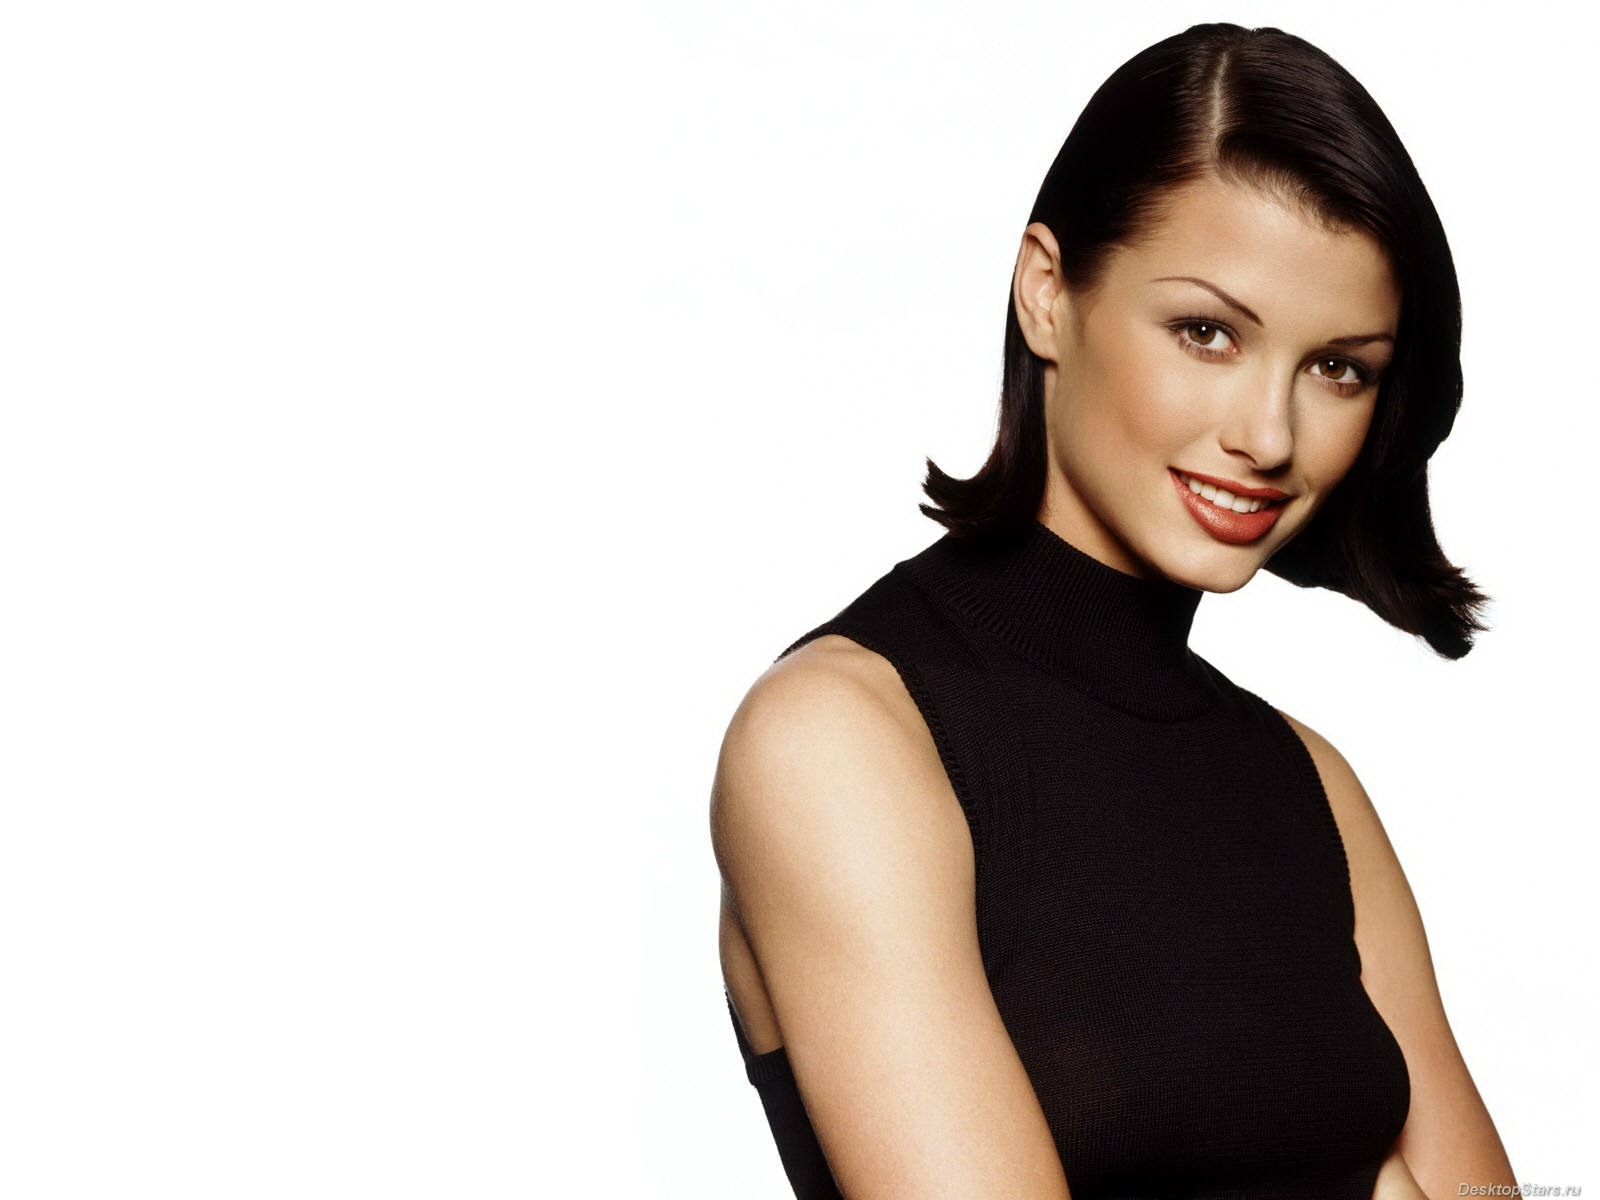 Bridget Moynahan #011 - 1600x1200 Wallpapers Pictures Photos Images